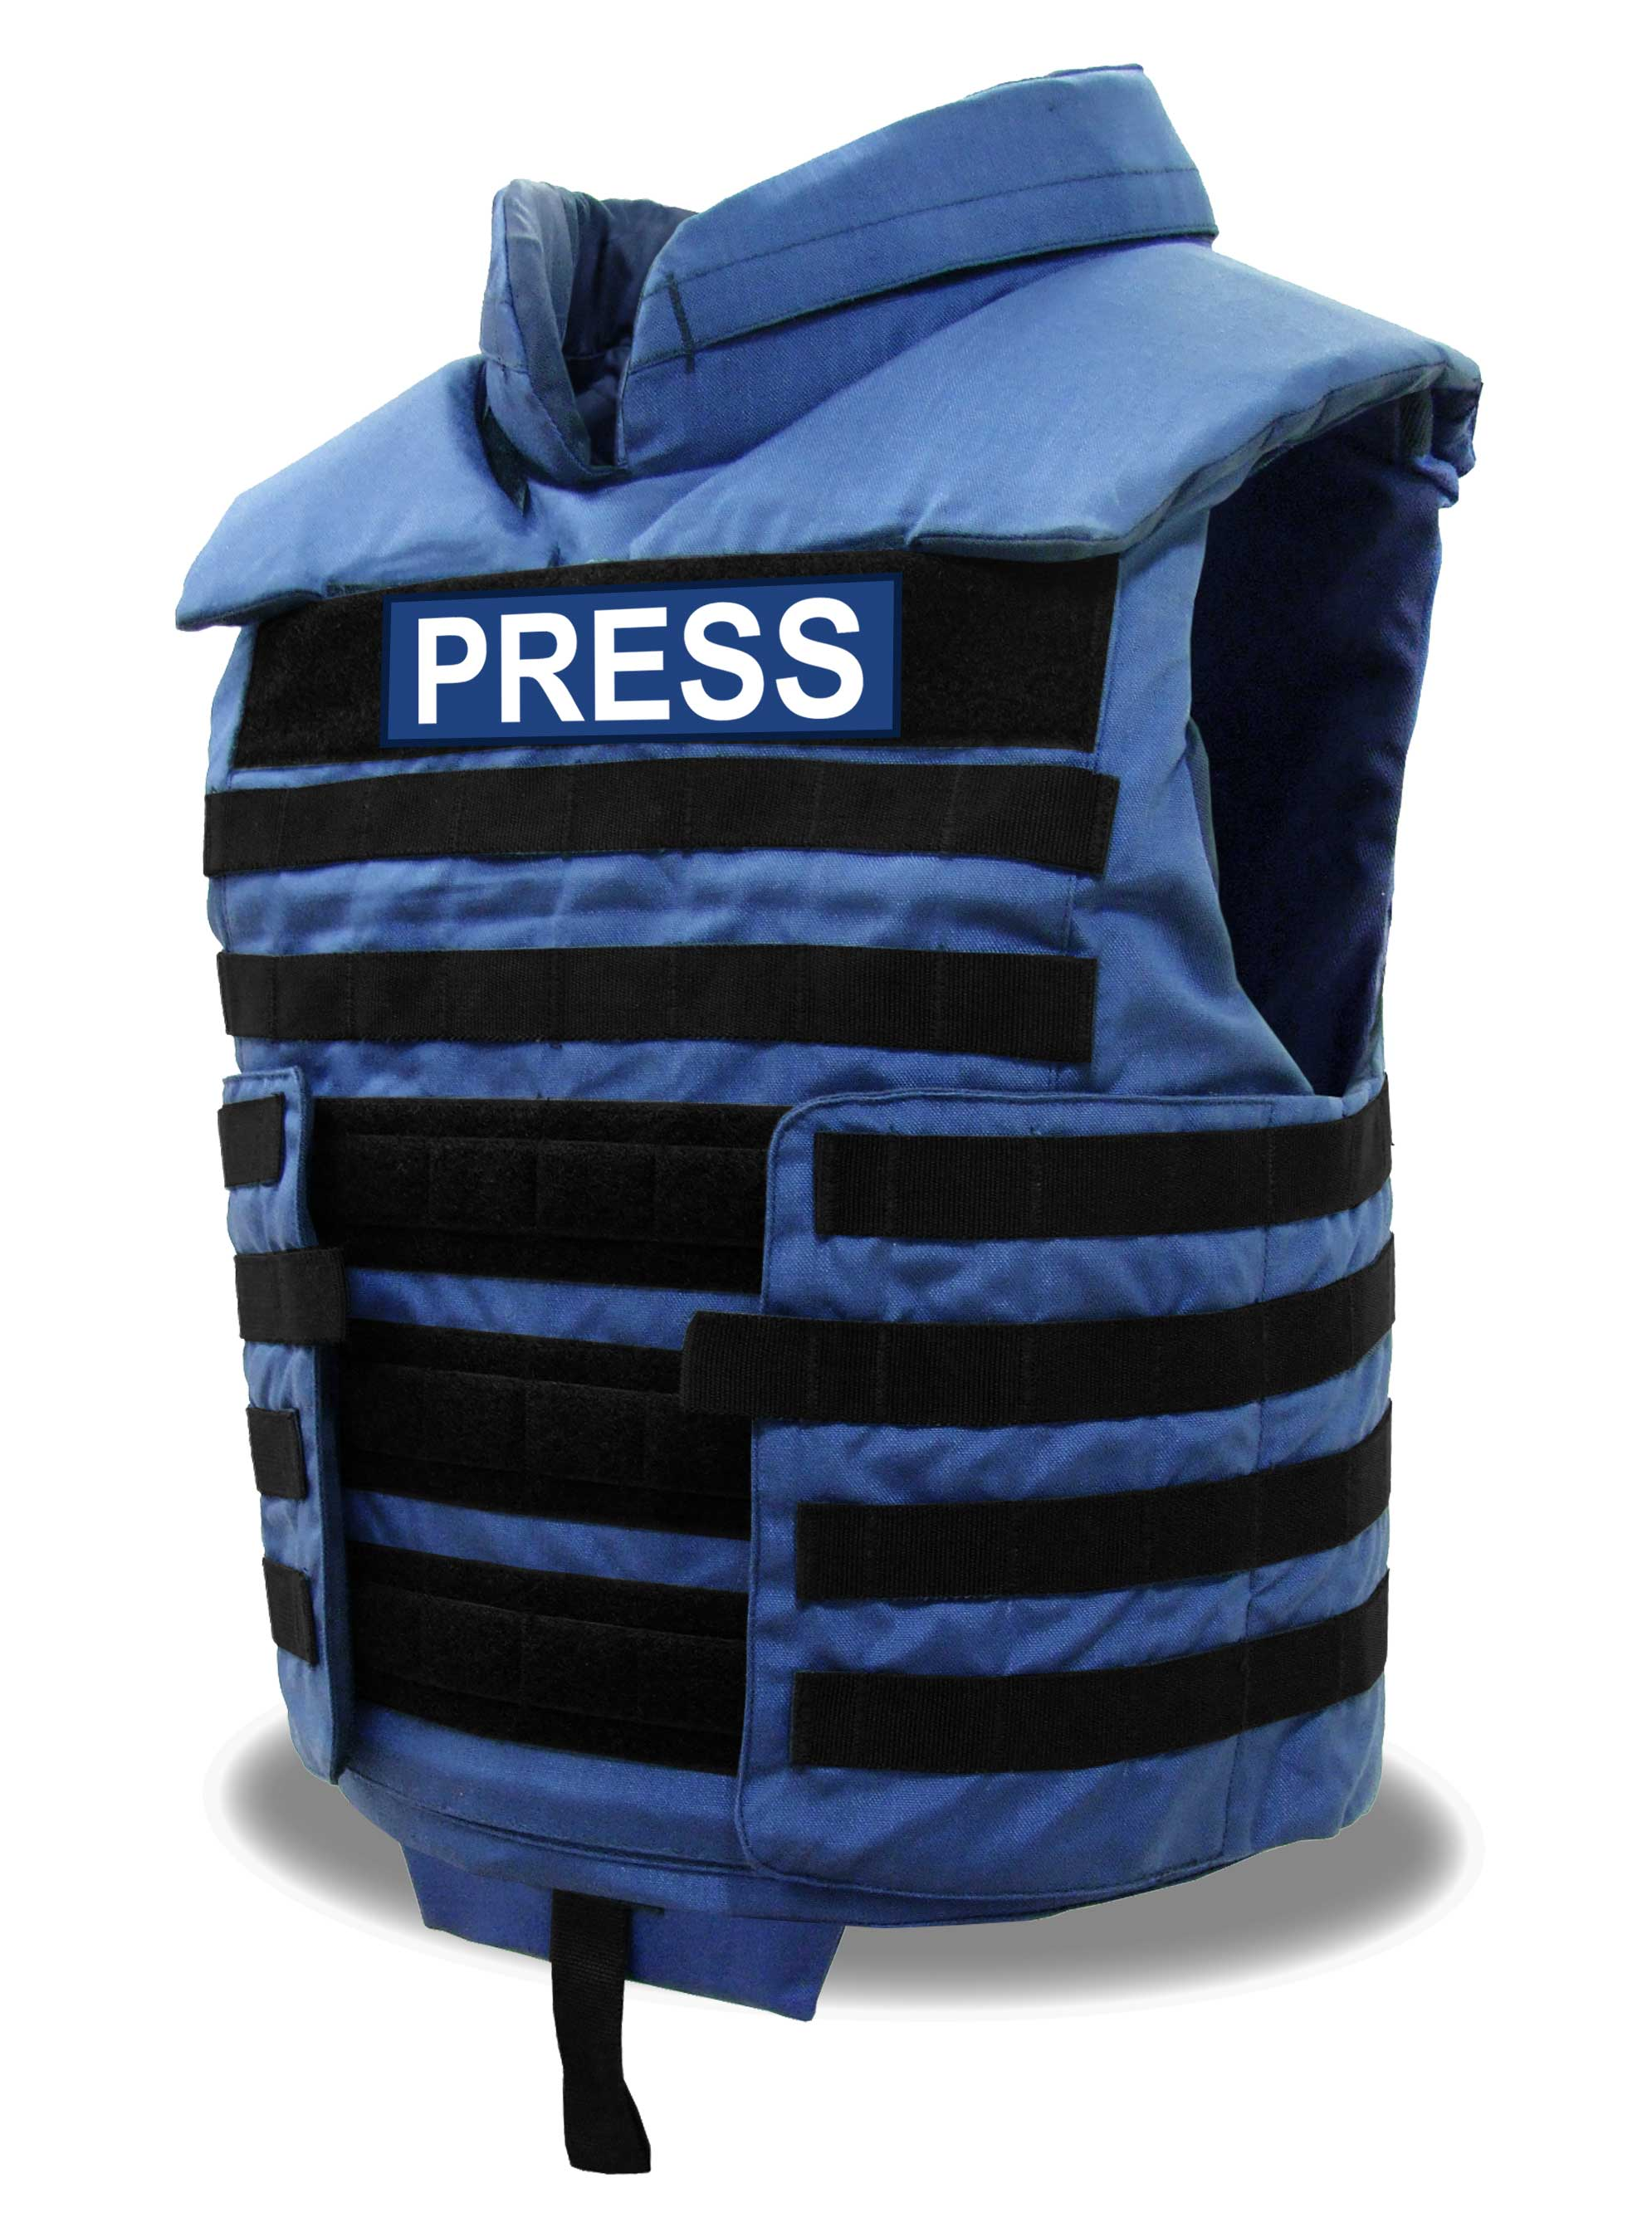 f967b382c0a VestGuard Overt Tactical Press Media Ballistic Bodyarmour Vest NIJ ...